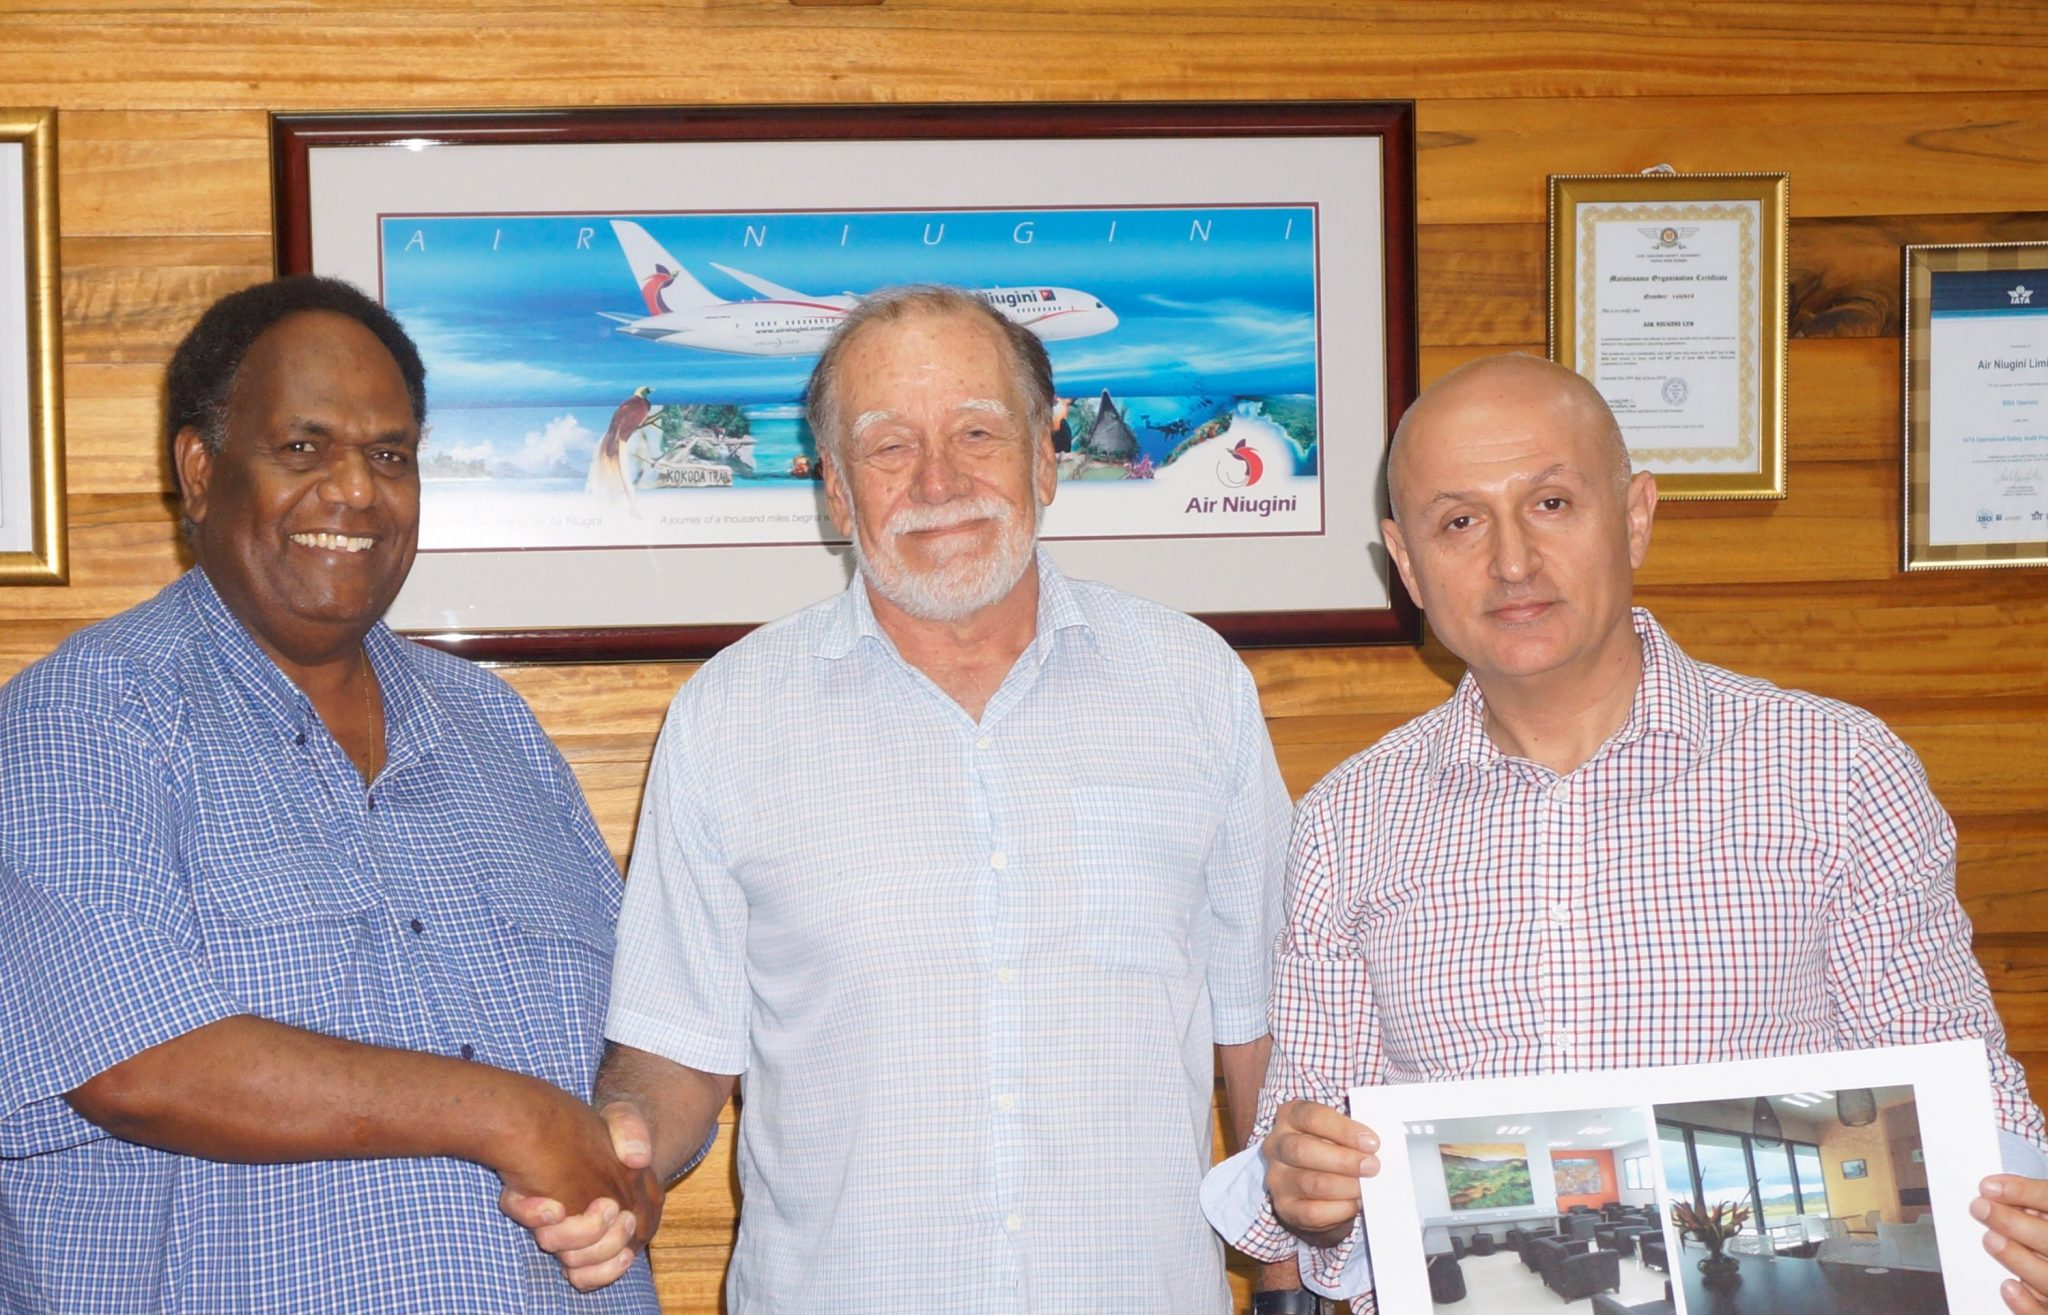 Air Niugini Paradise Lounge design wins award